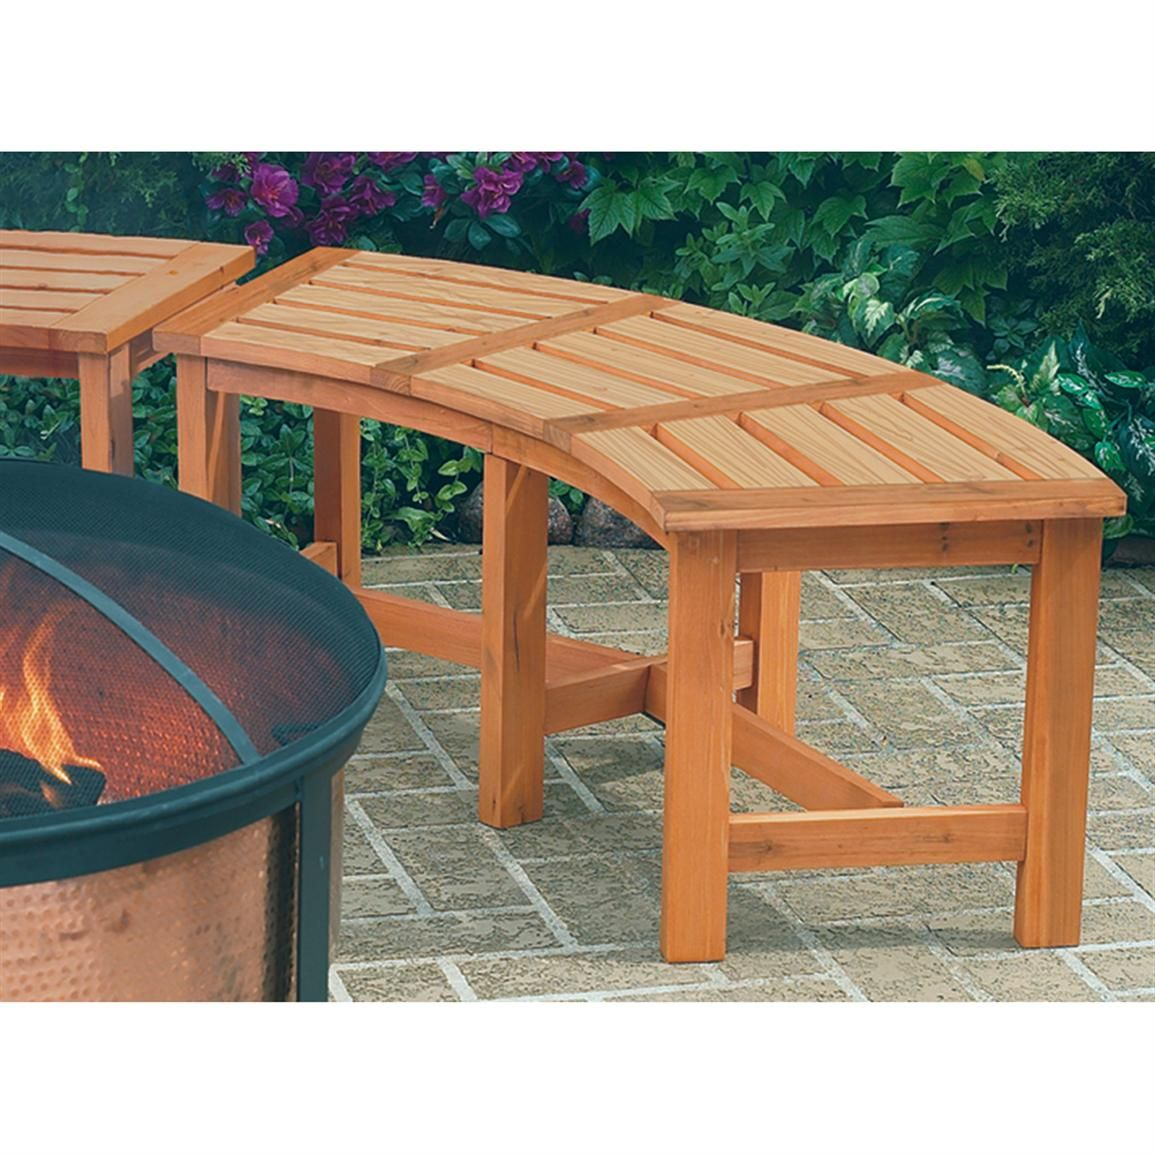 CobraCo 1/6 Round Fire Pit/Garden Bench lets you customize your ...